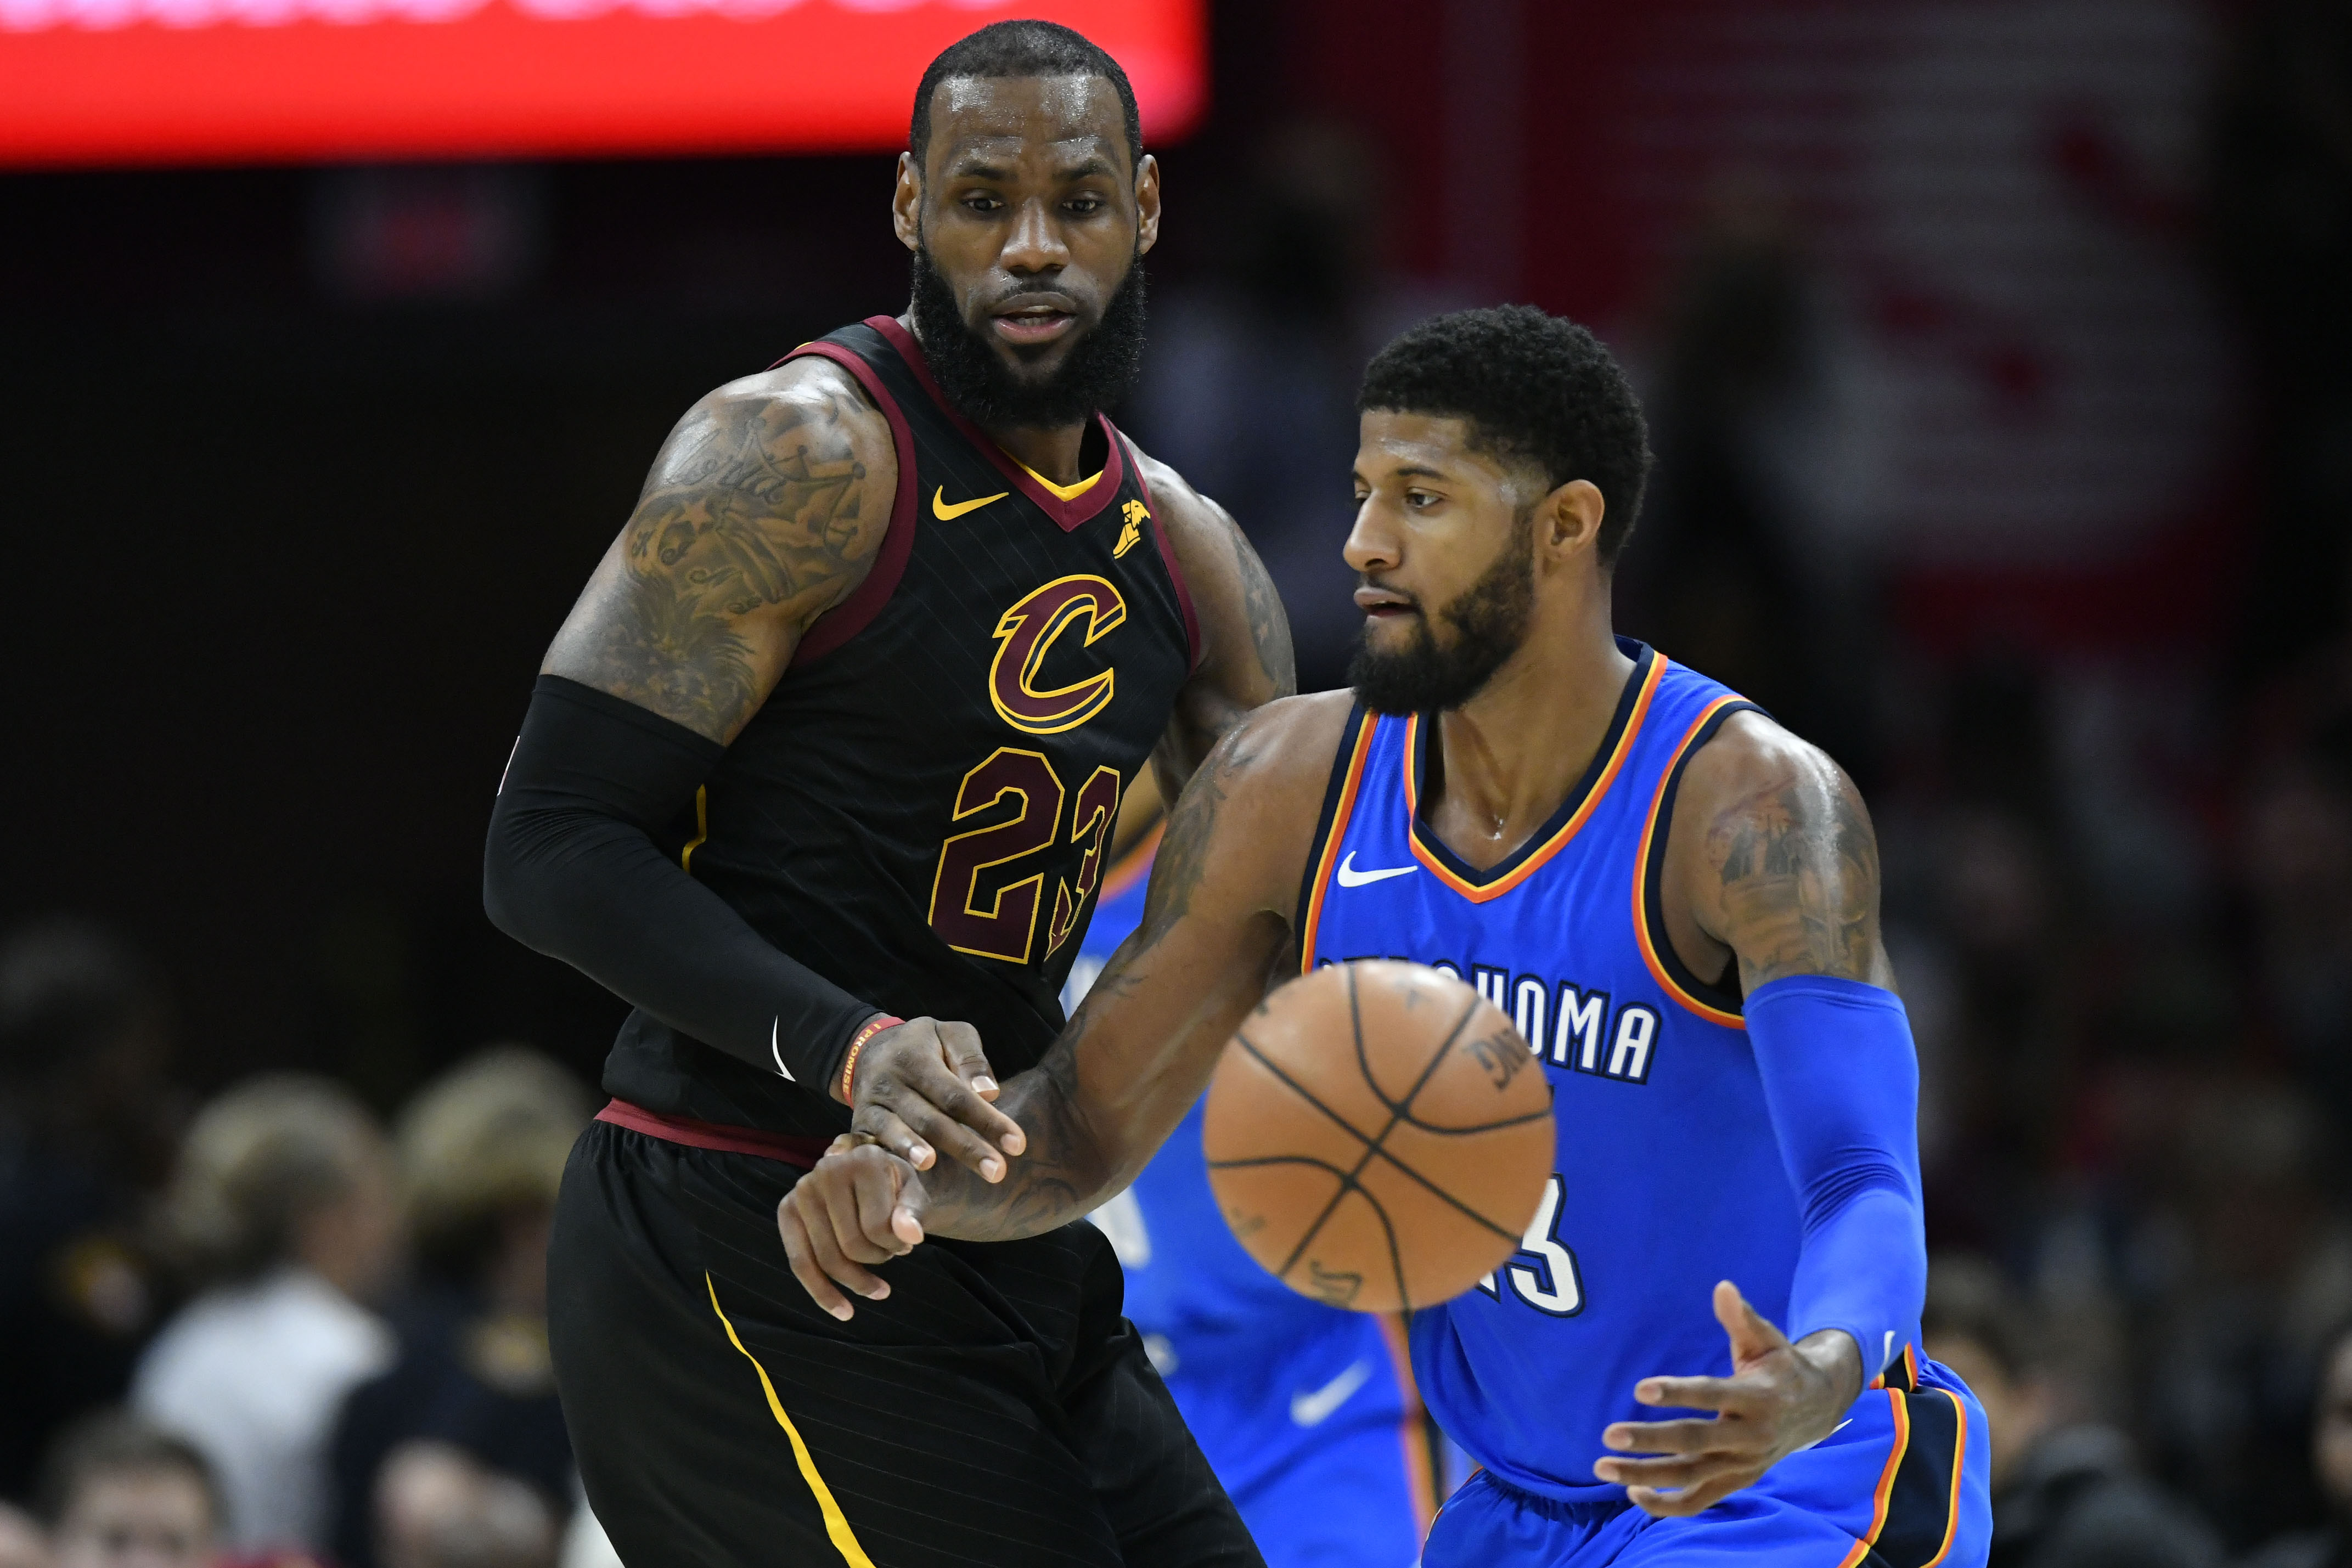 Jan 20, 2018; Cleveland, OH, USA; Cleveland Cavaliers forward LeBron James (23) defends Oklahoma City Thunder forward Paul George (13) in the third quarter at Quicken Loans Arena. Mandatory Credit: David Richard-USA TODAY Sports